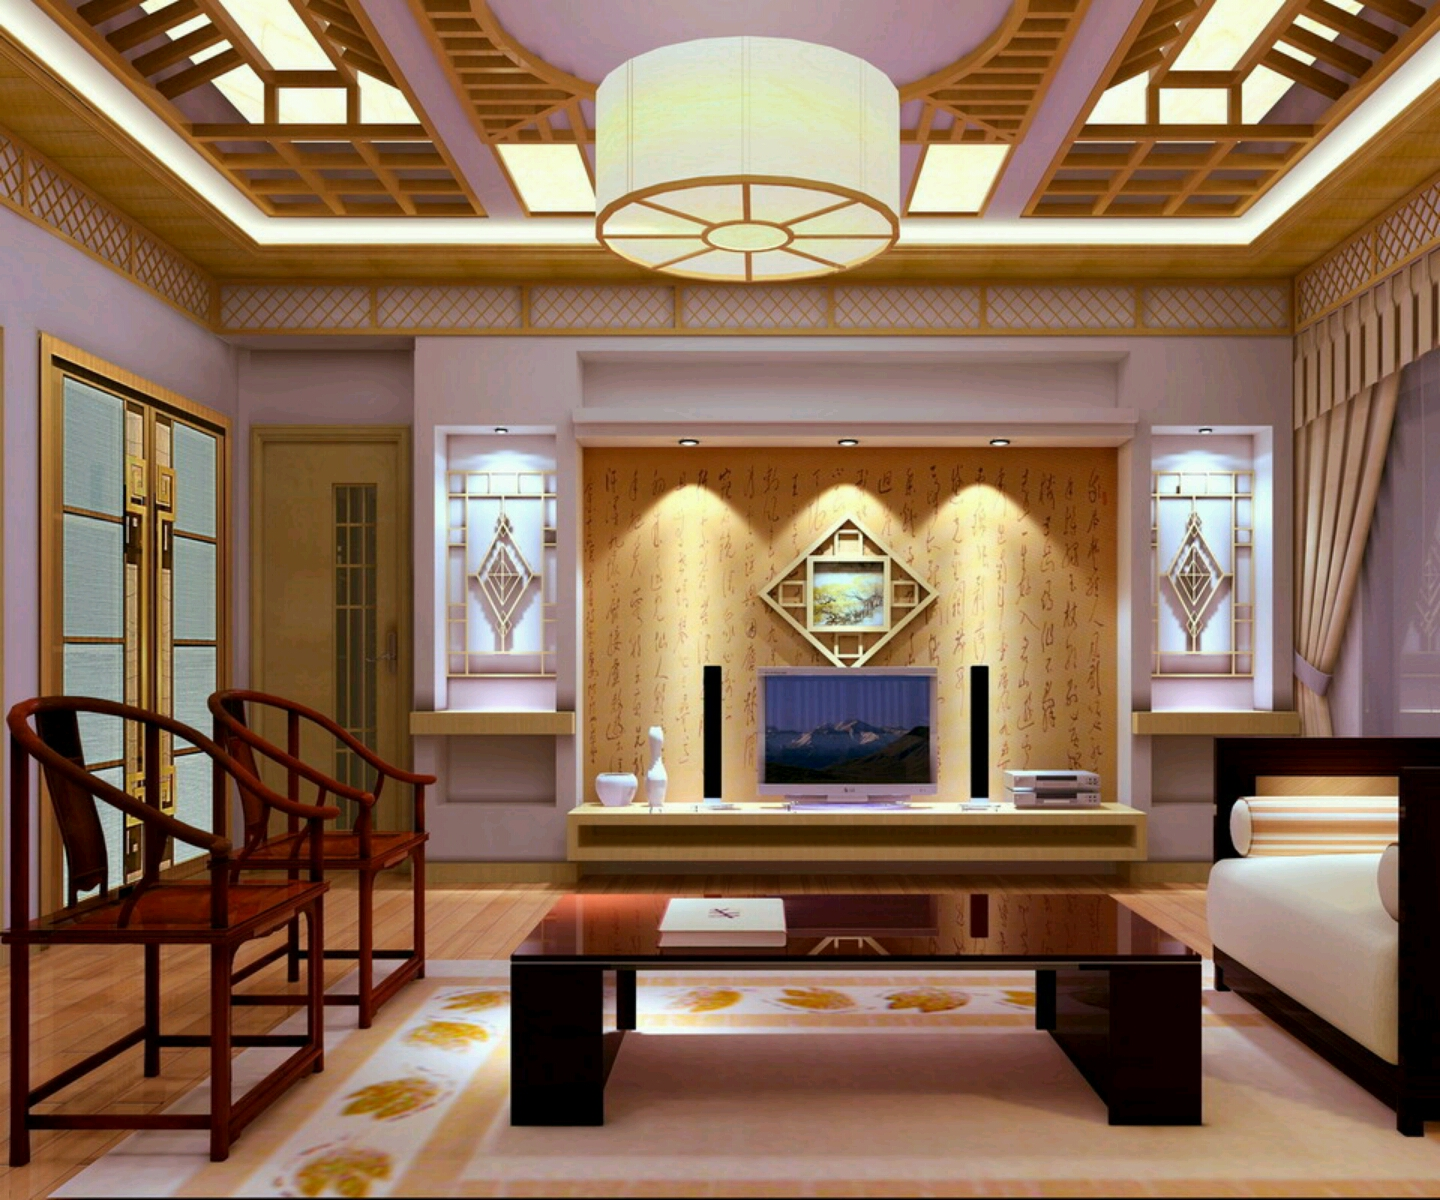 New home designs latest homes interior designs studyrooms for New house interior ideas